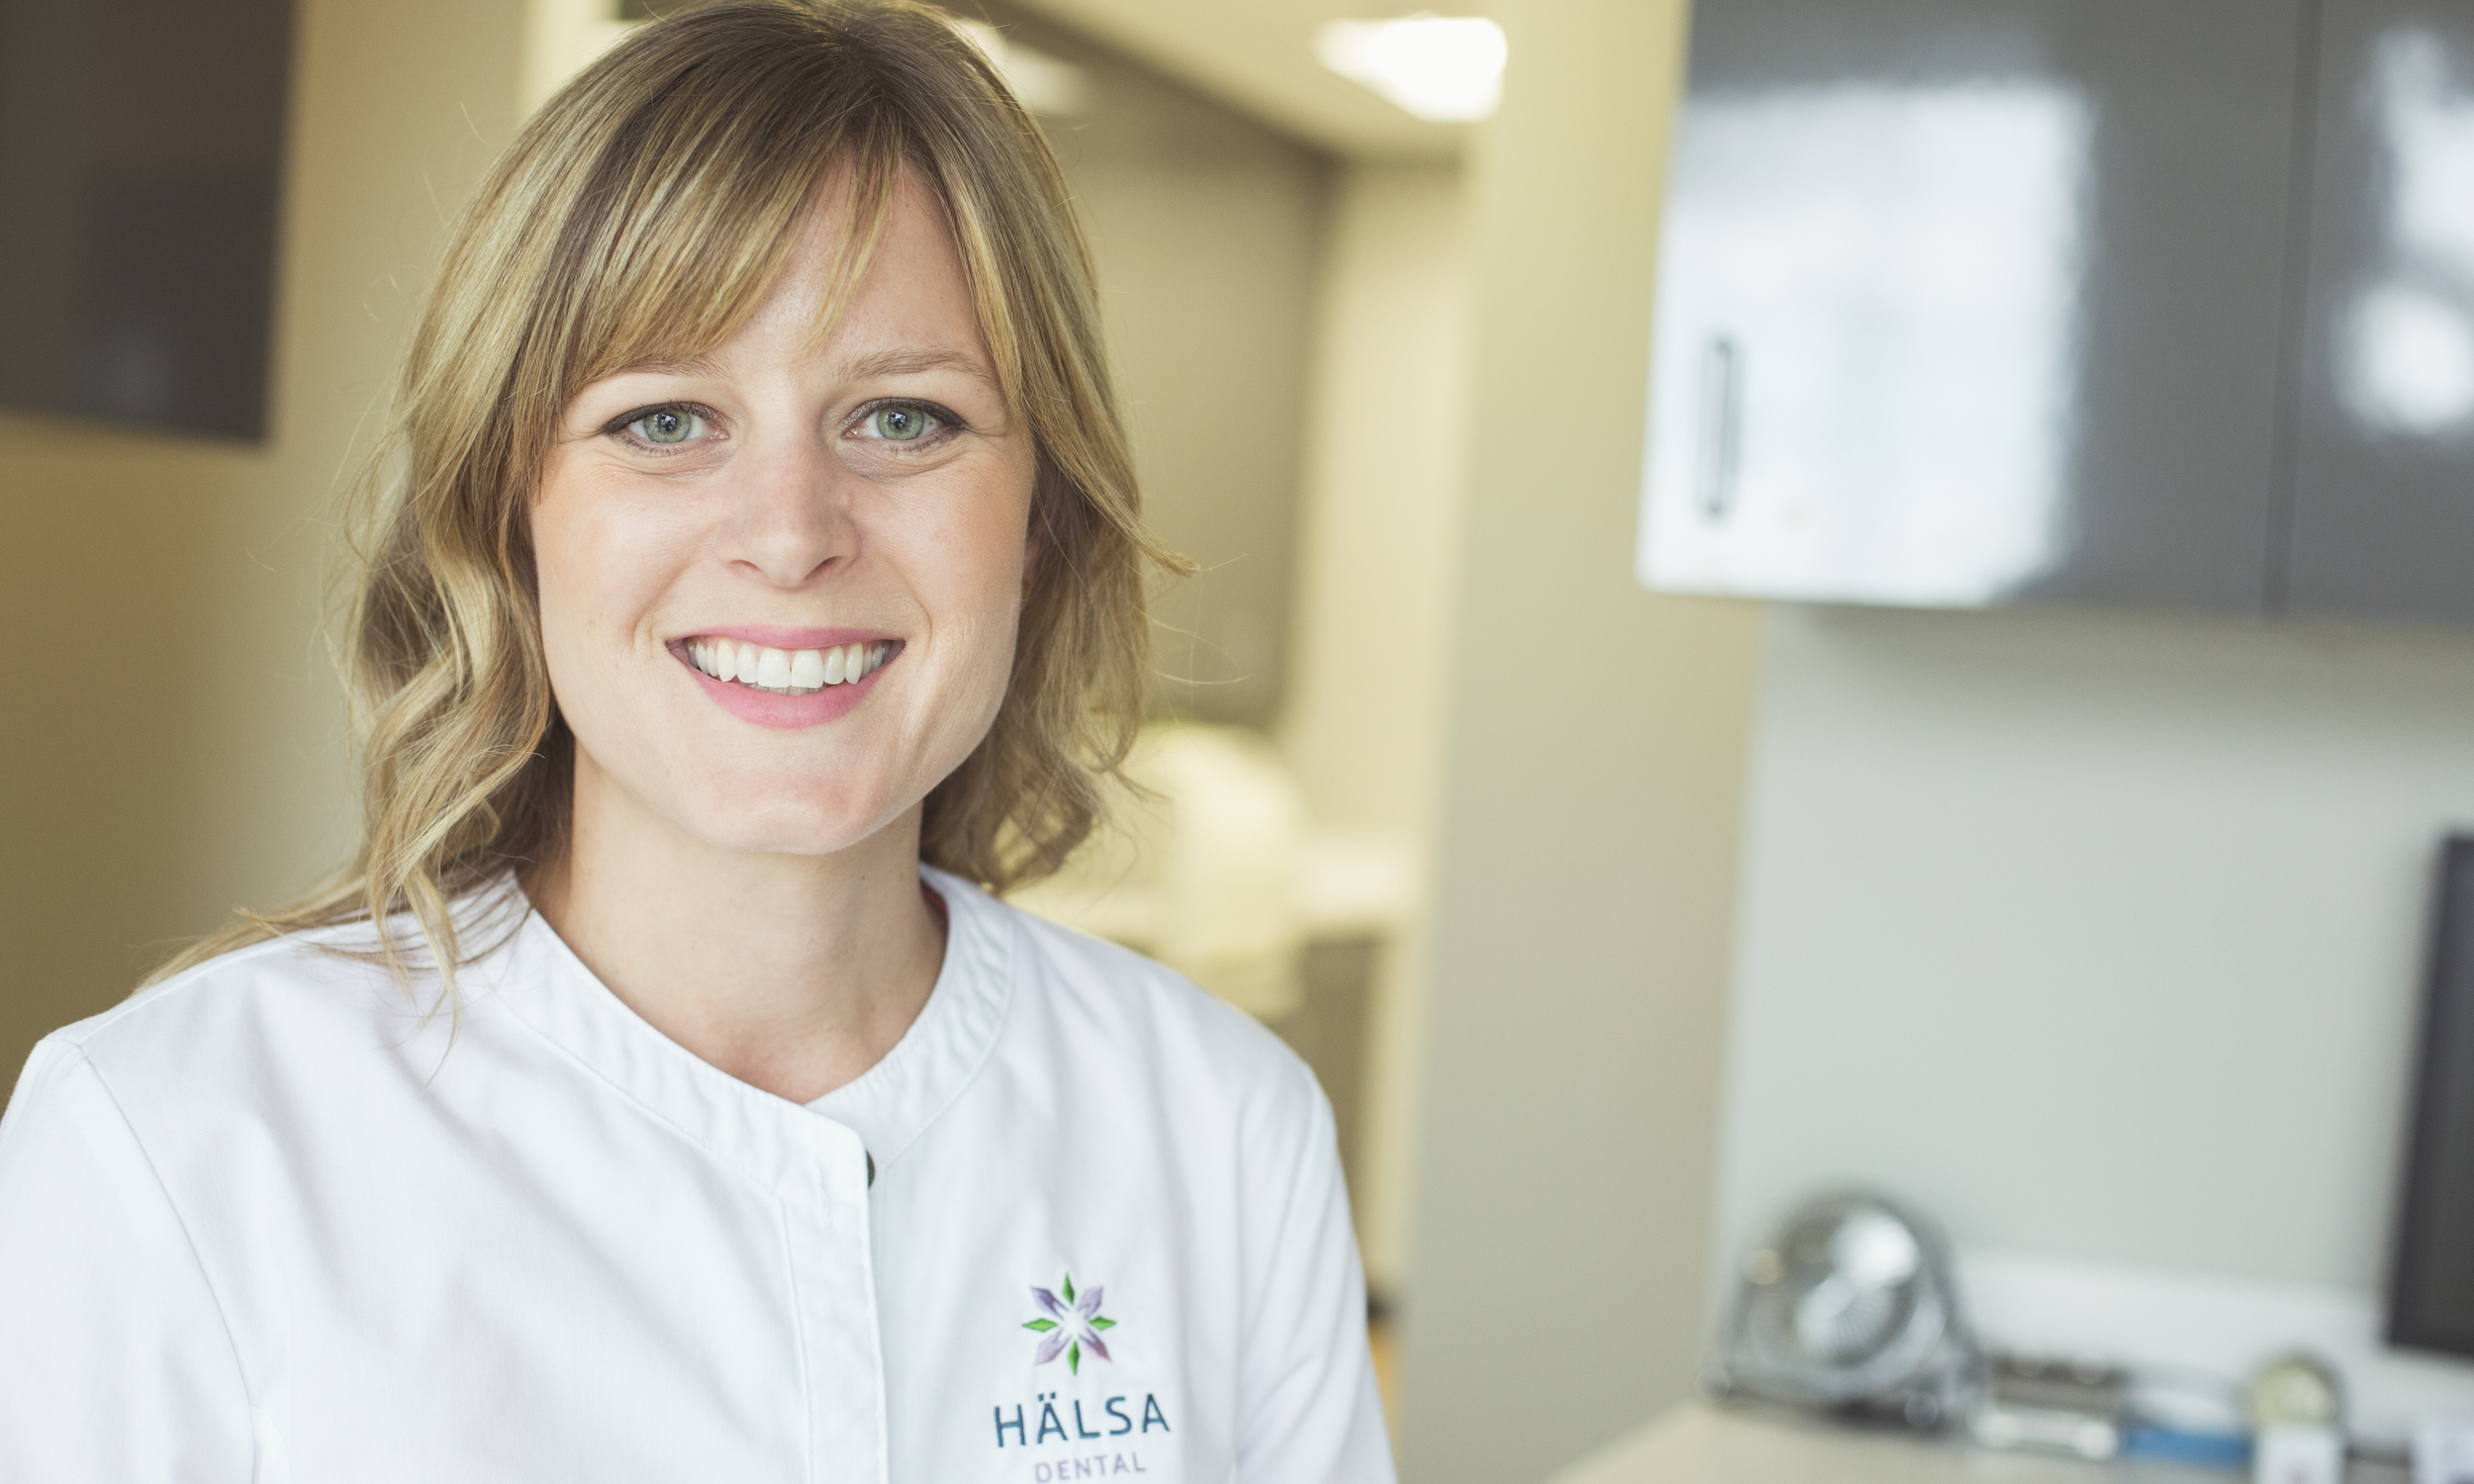 lauren_peterson_halsa_dental